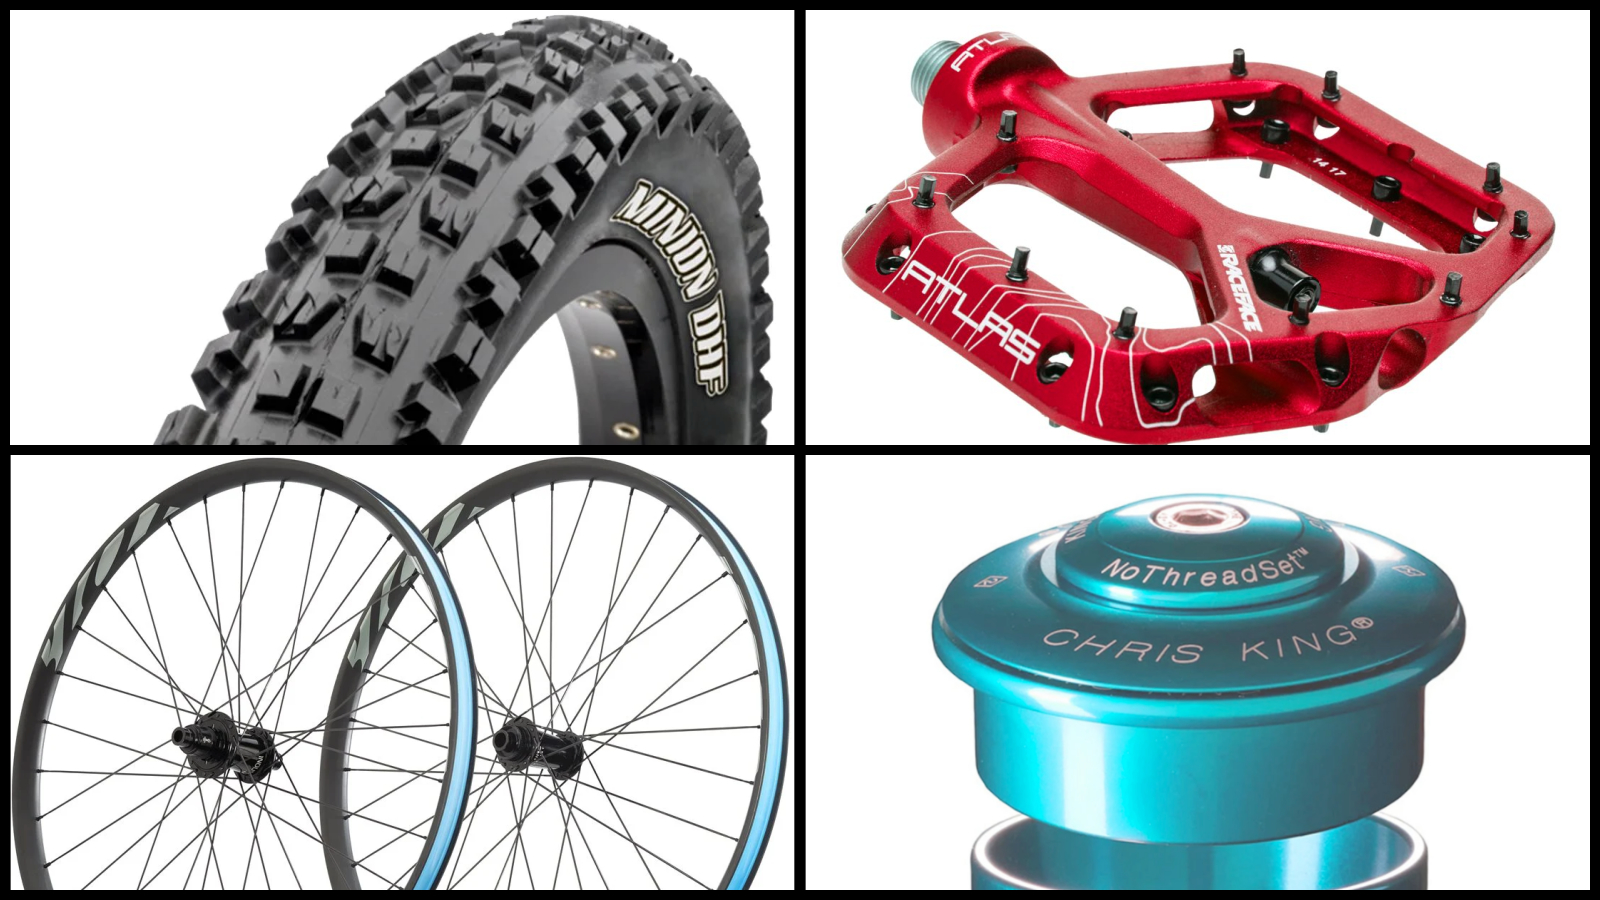 A few key component upgrades can make your old bike feel like new.